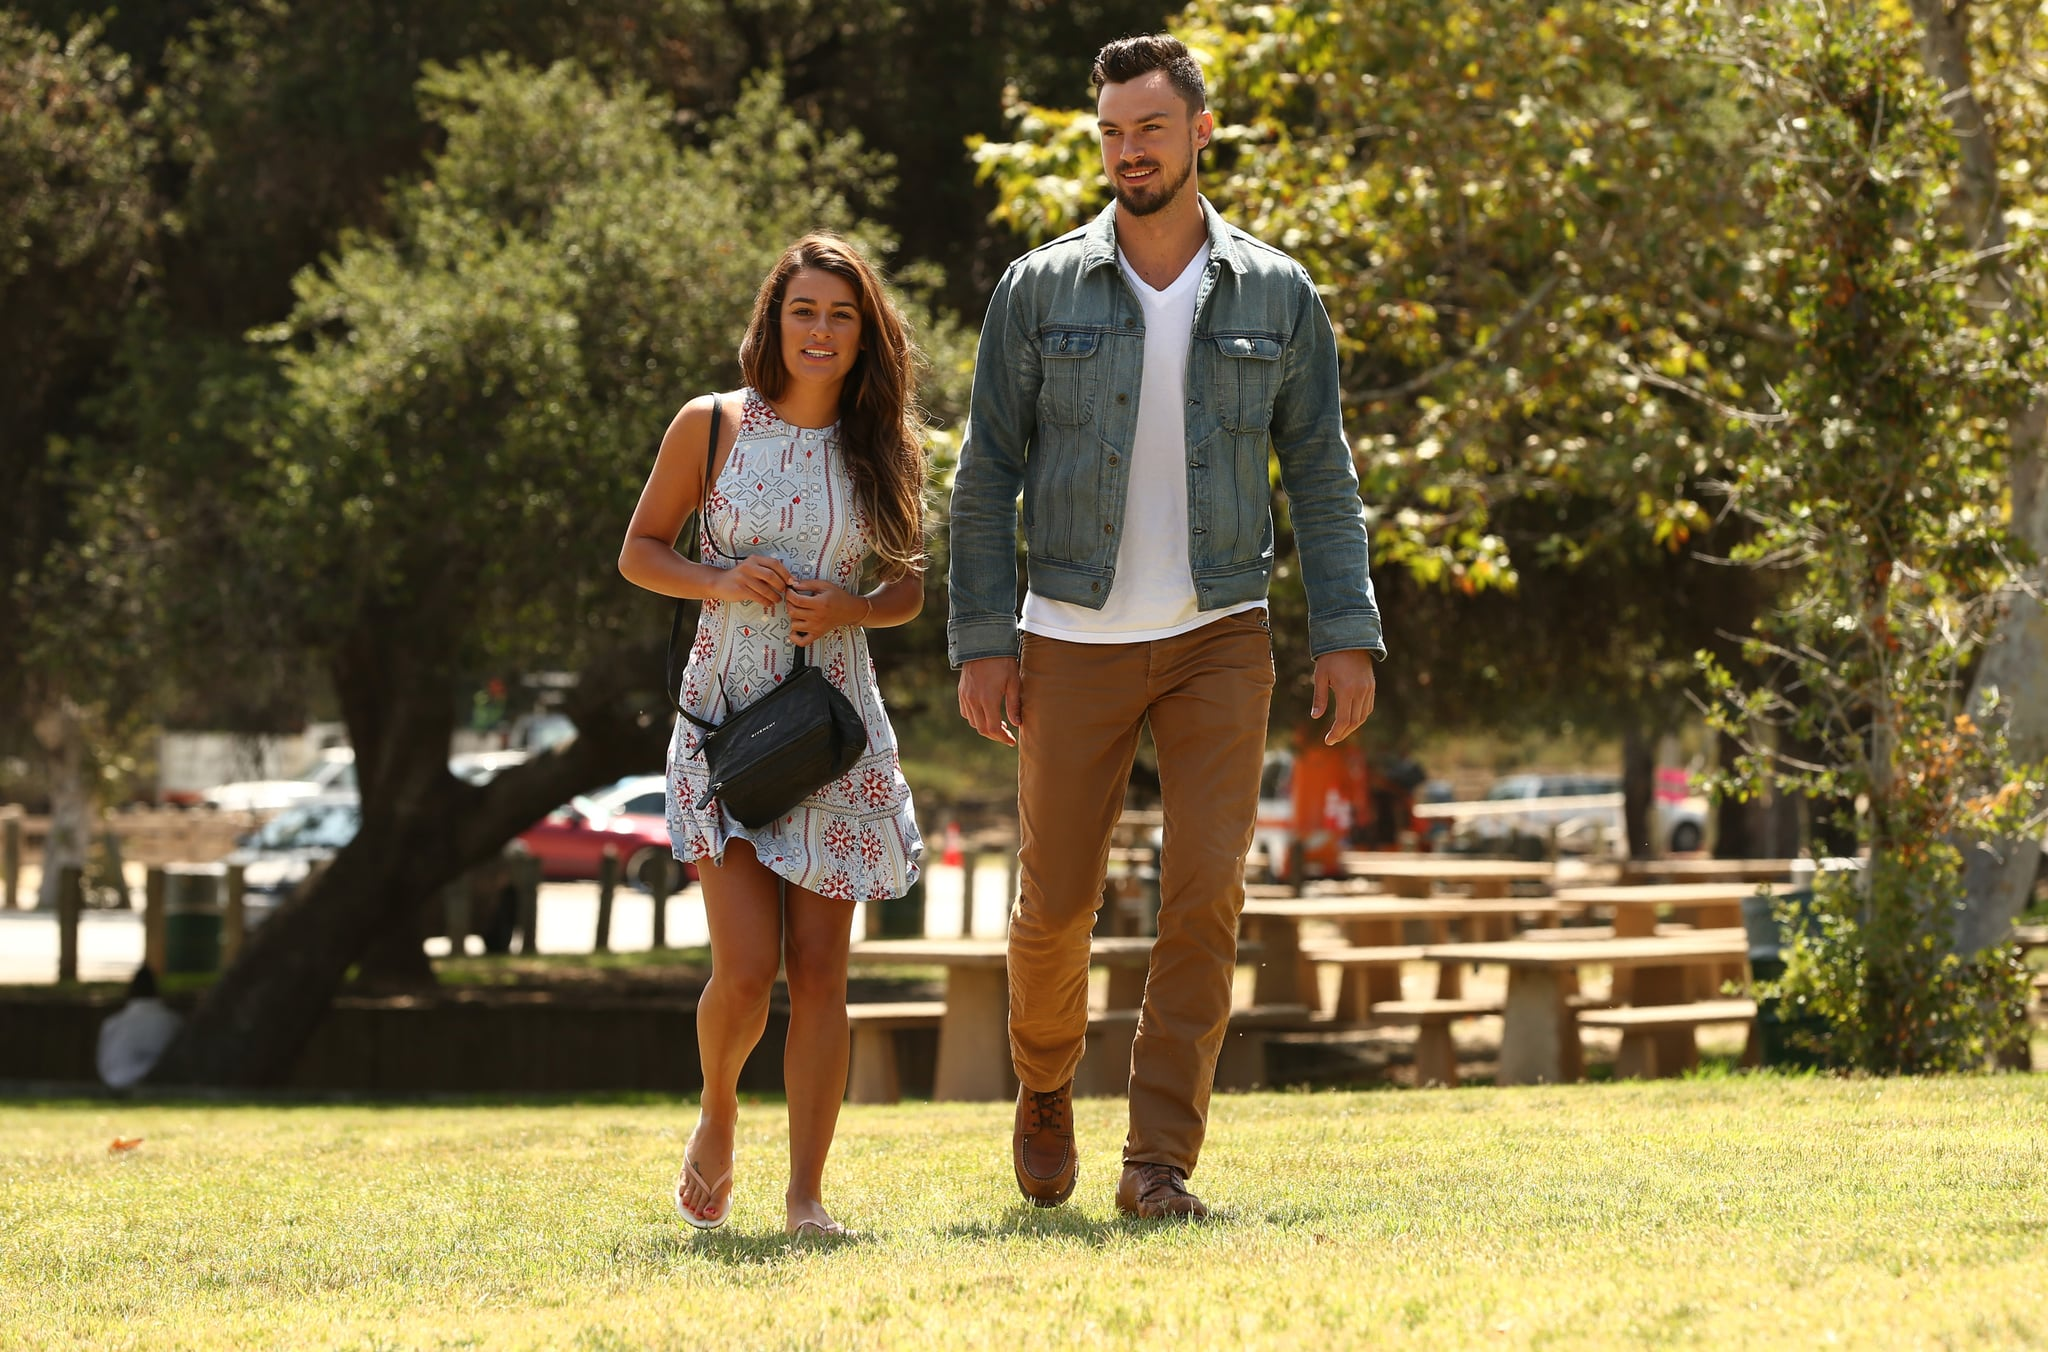 Lea Michele and Her New Boyfriend Have That Look of Love